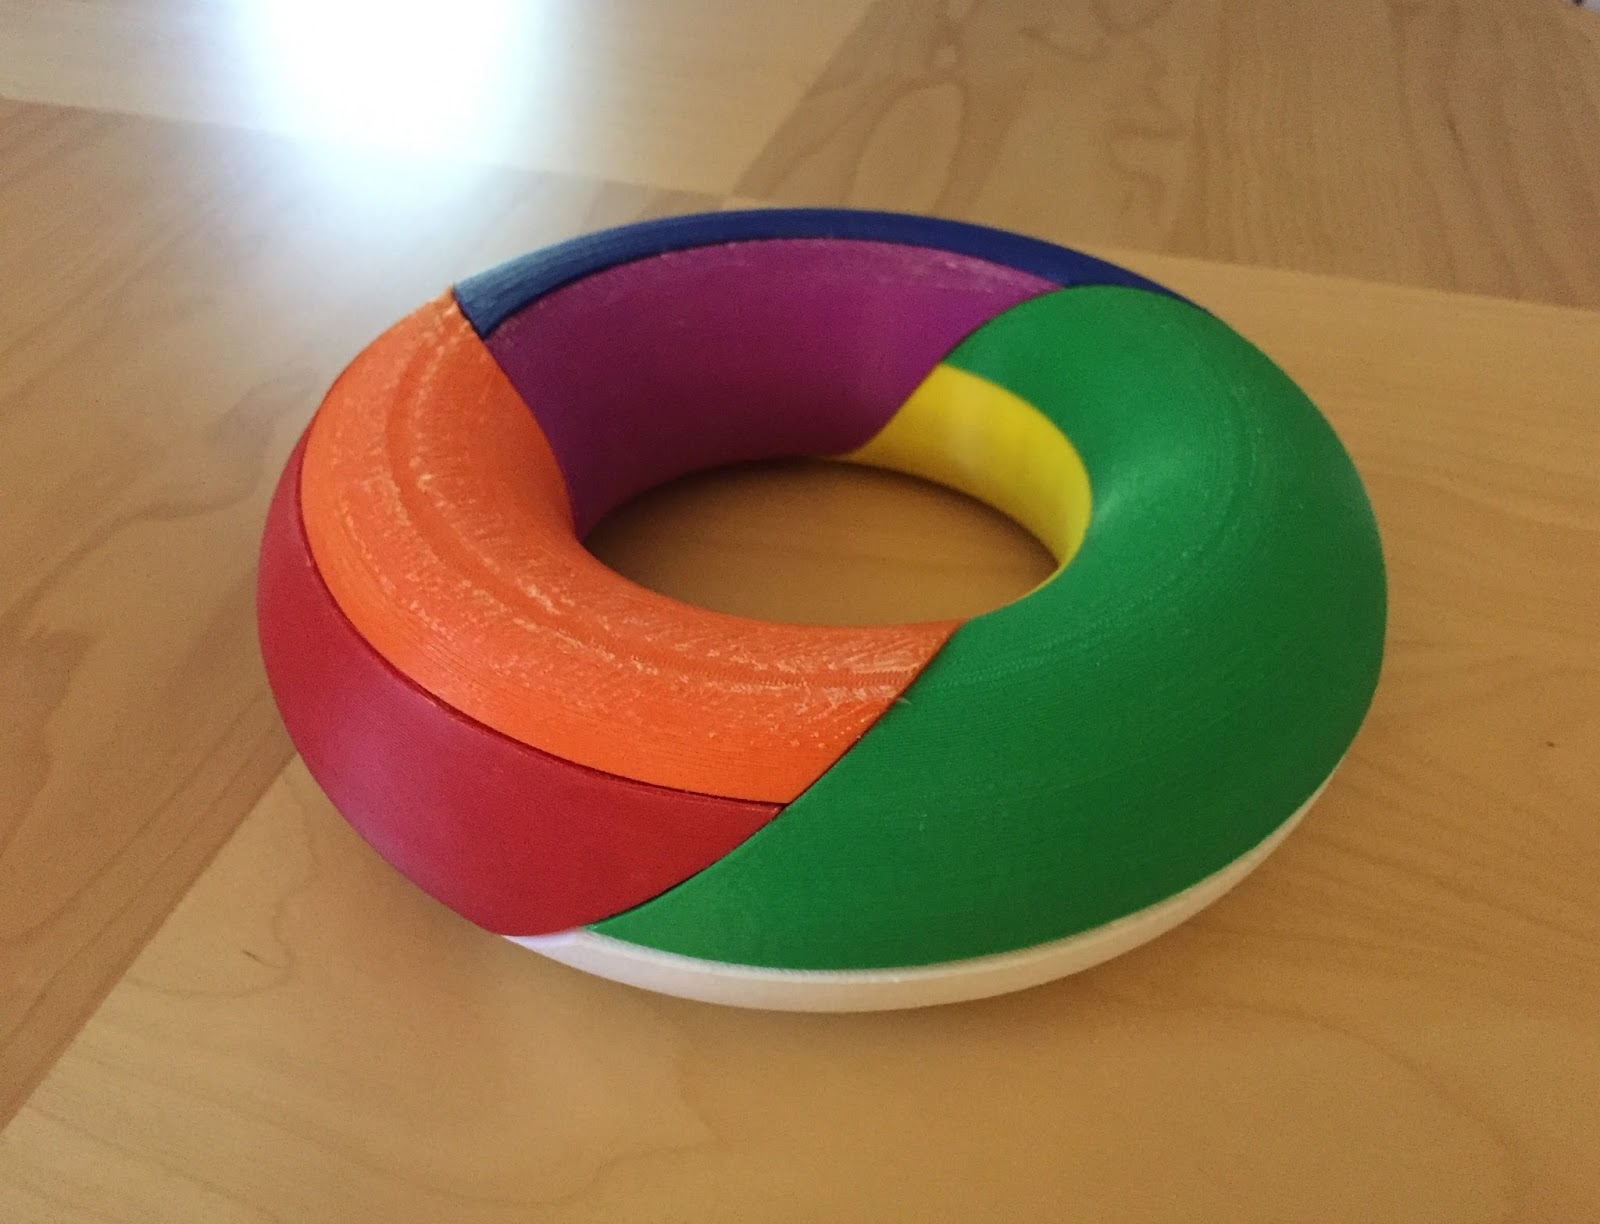 torus model http www thingiverse com thing 721430 by bonyjordan scaled up for classroom use original is half this size note this map coloring